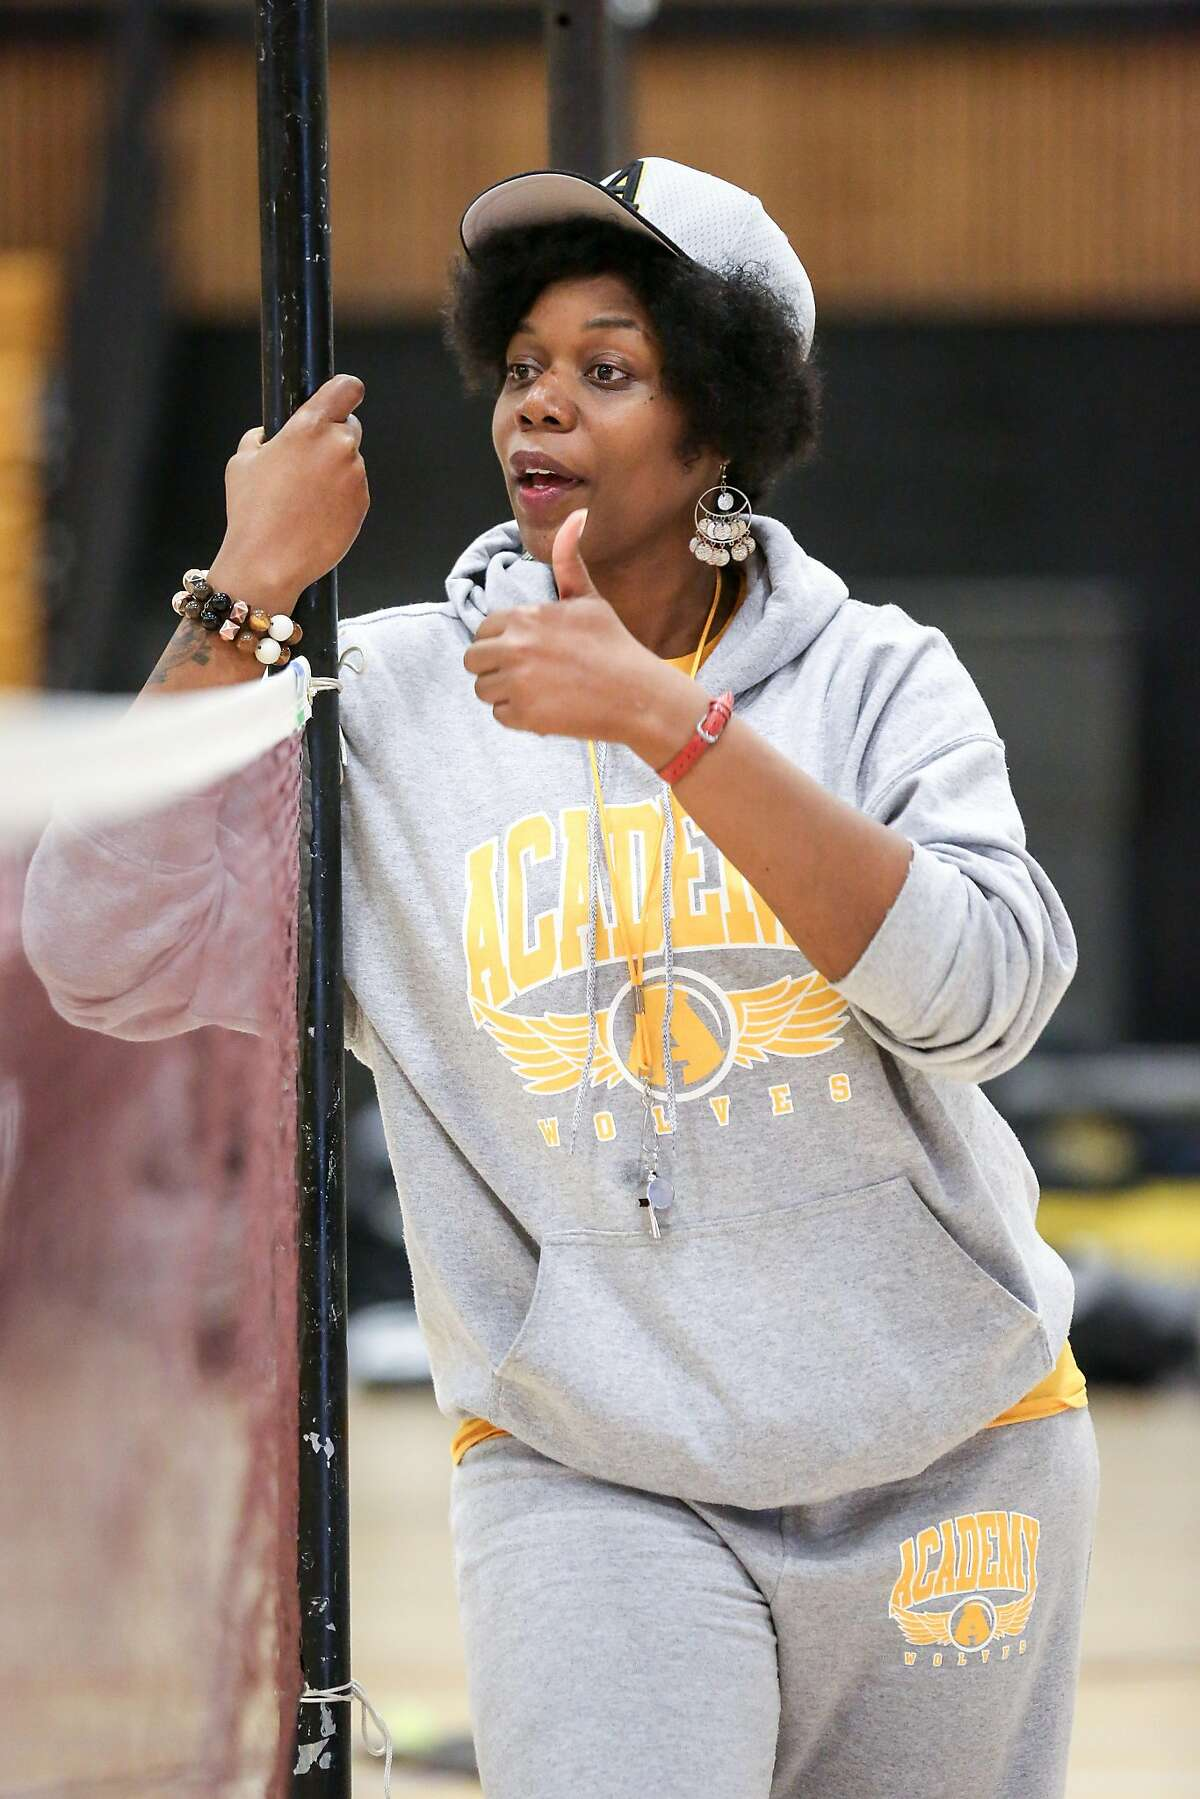 Math teacher and badminton coach Etoria Cheeks gives feedback to students during a badminton match at The Academy San Francisco high school on Tuesday, April 4, 2017 in San Francisco, Calif.